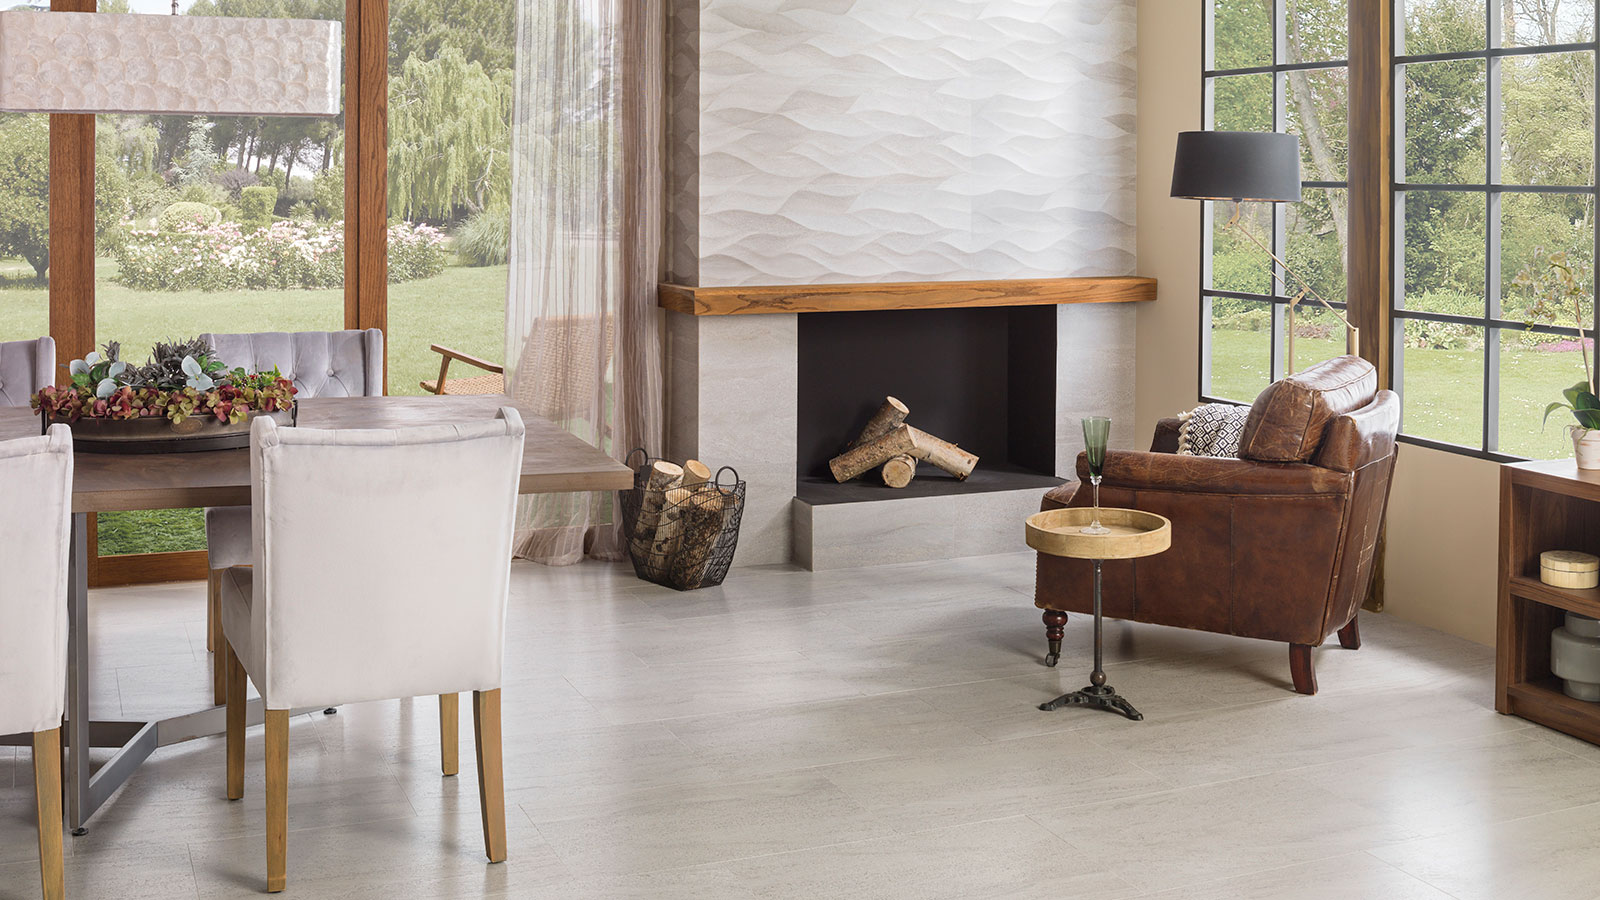 Stone inspired ceramic floor tiles and wall tiles